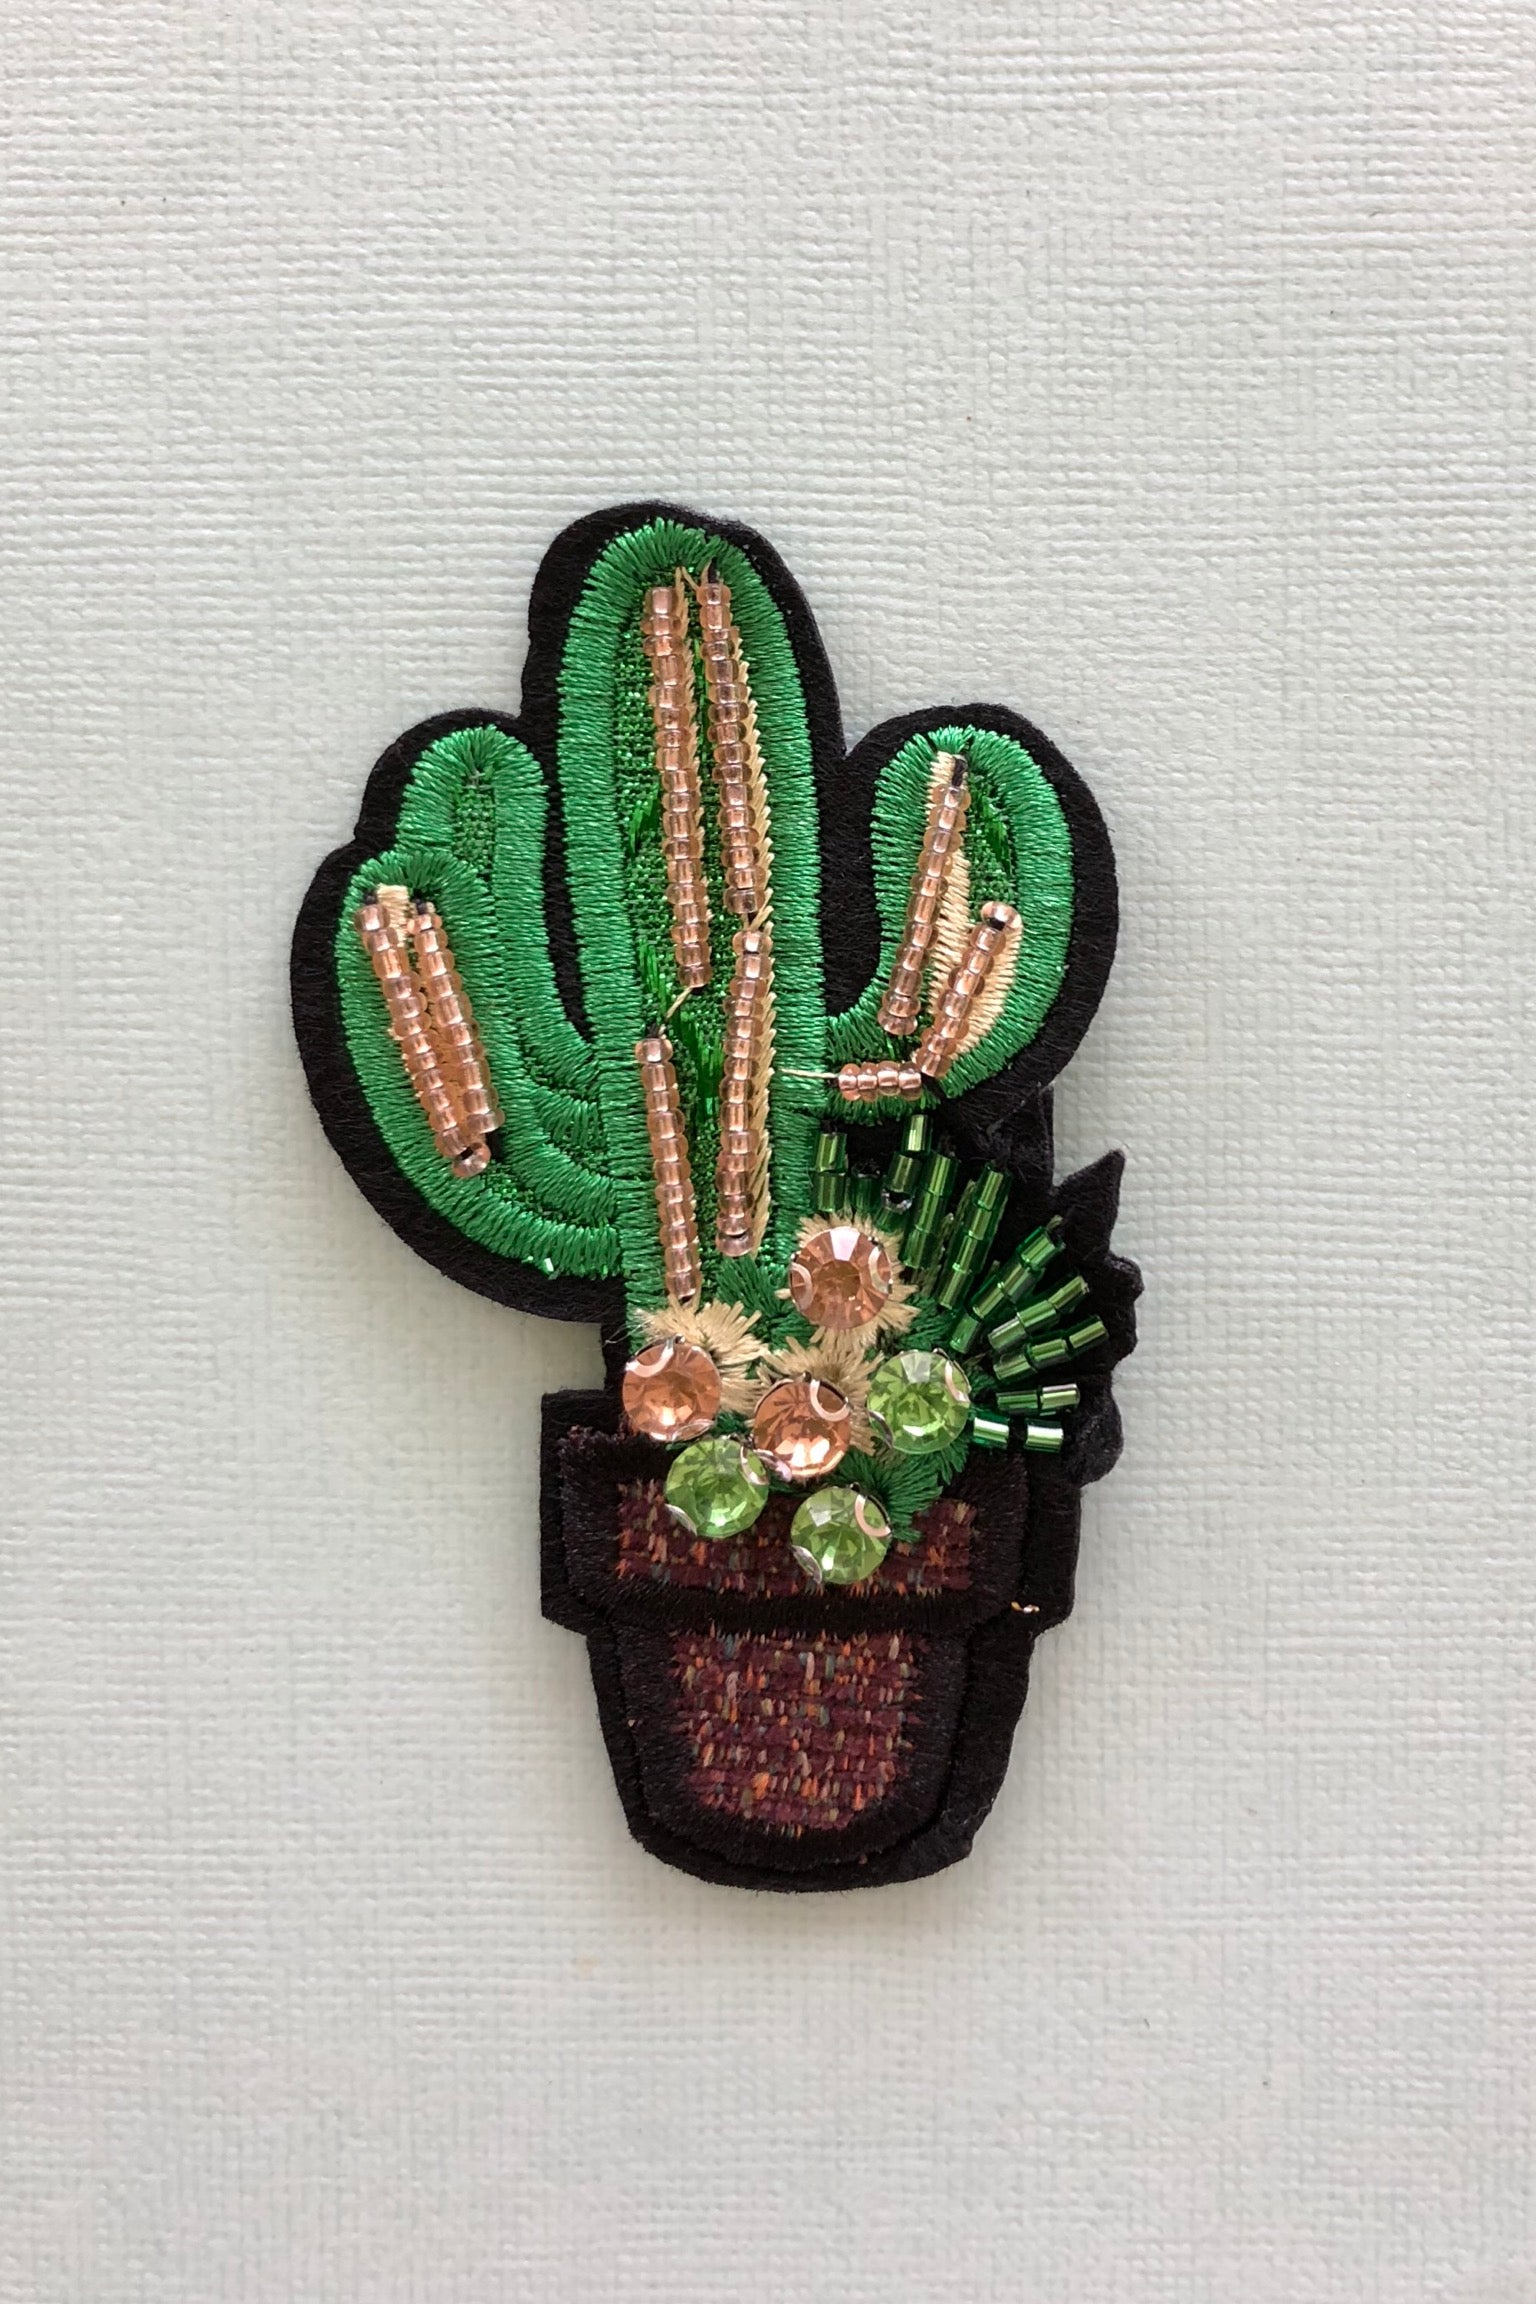 Iron on Motif Cactus Motif, cute cactus patch for jeans decoration